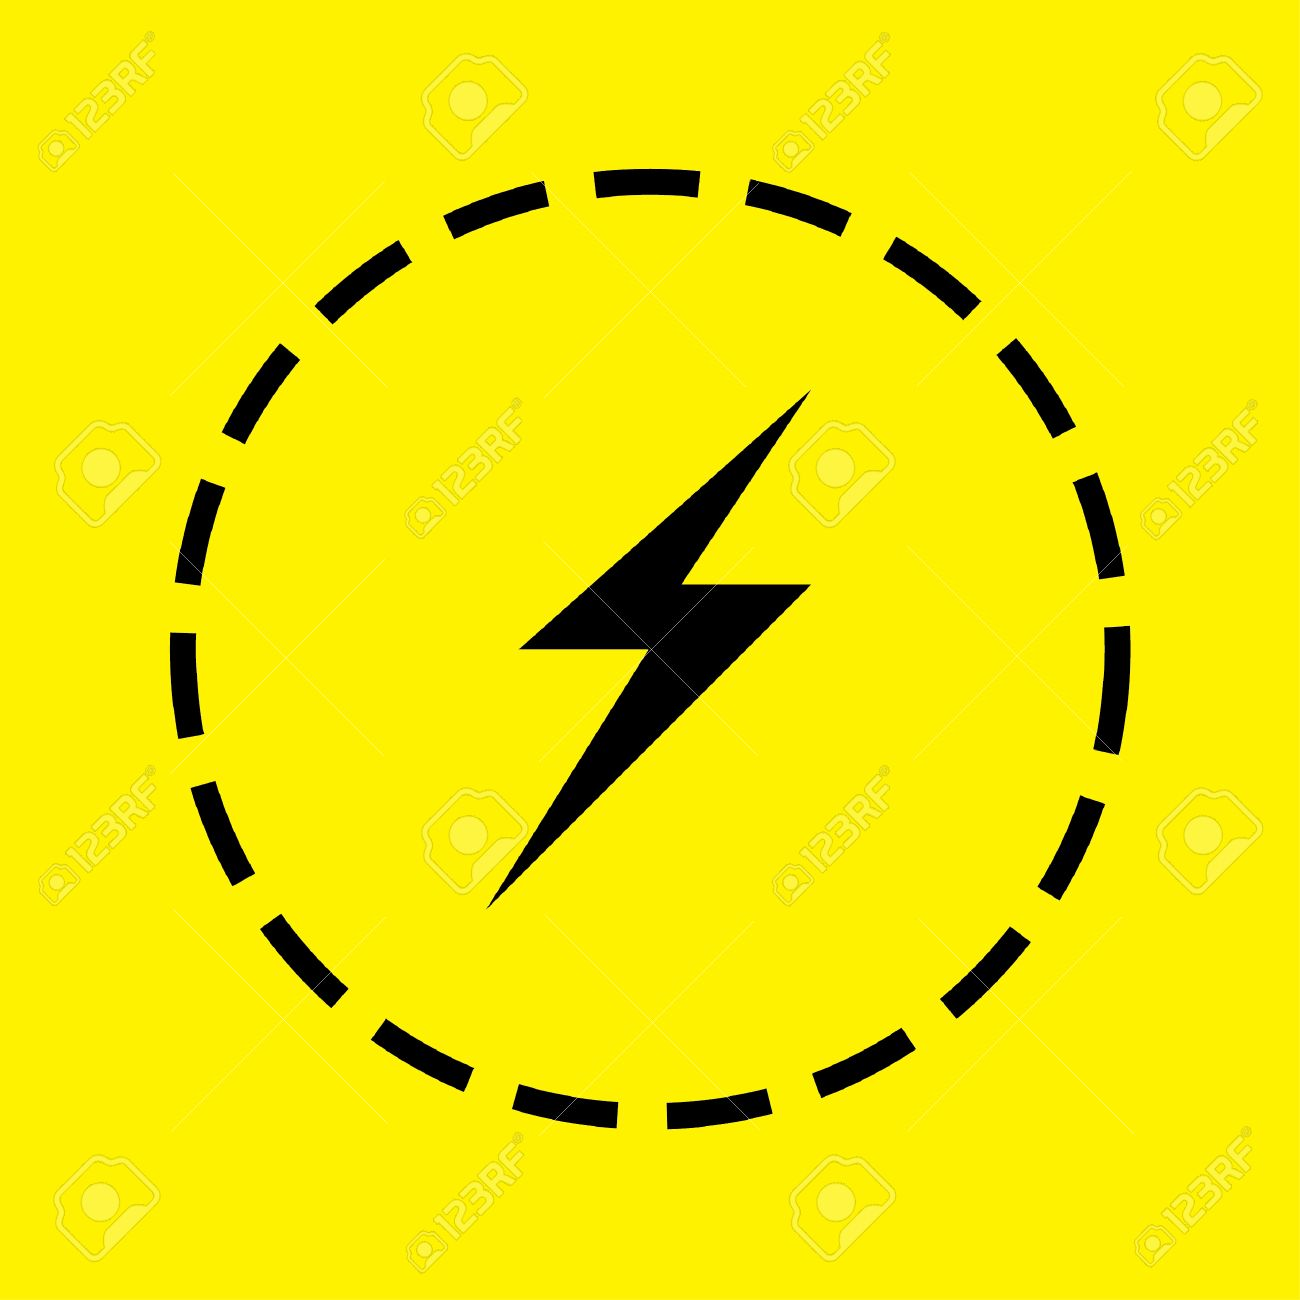 A Black Icon Isolated On A Yellow Background Lightning Bolt Stock Photo Picture And Royalty Free Image Image 49089039